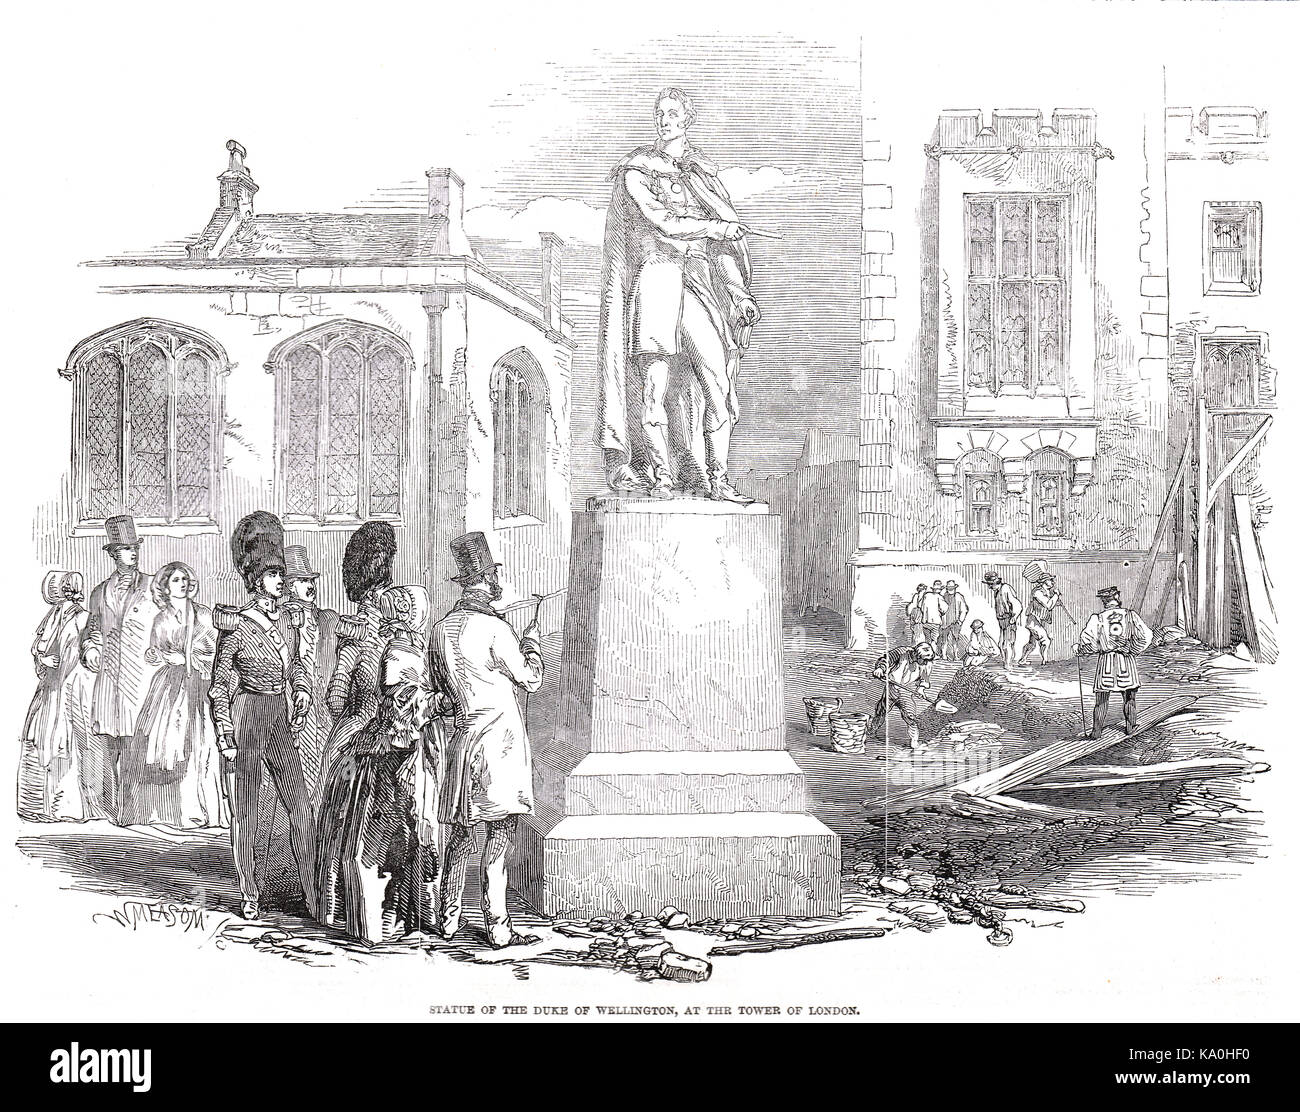 Statue of Duke of Wellington at the Tower of London, 1848 - Stock Image